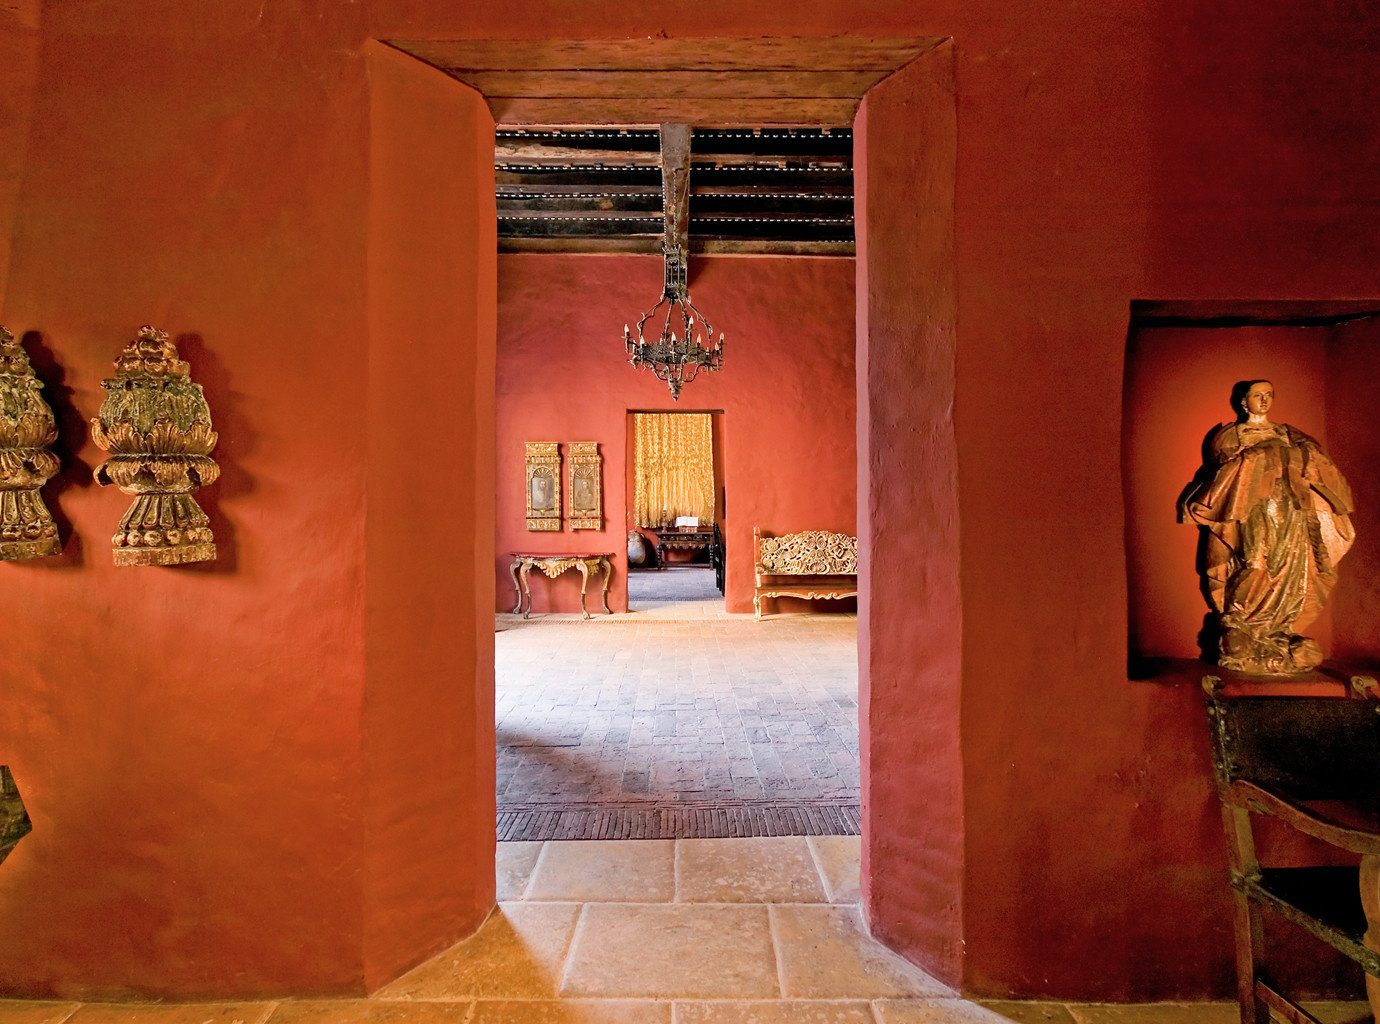 Hotels Romance red wall art ancient history tourist attraction art gallery interior design temple museum orange painted furniture altar stone